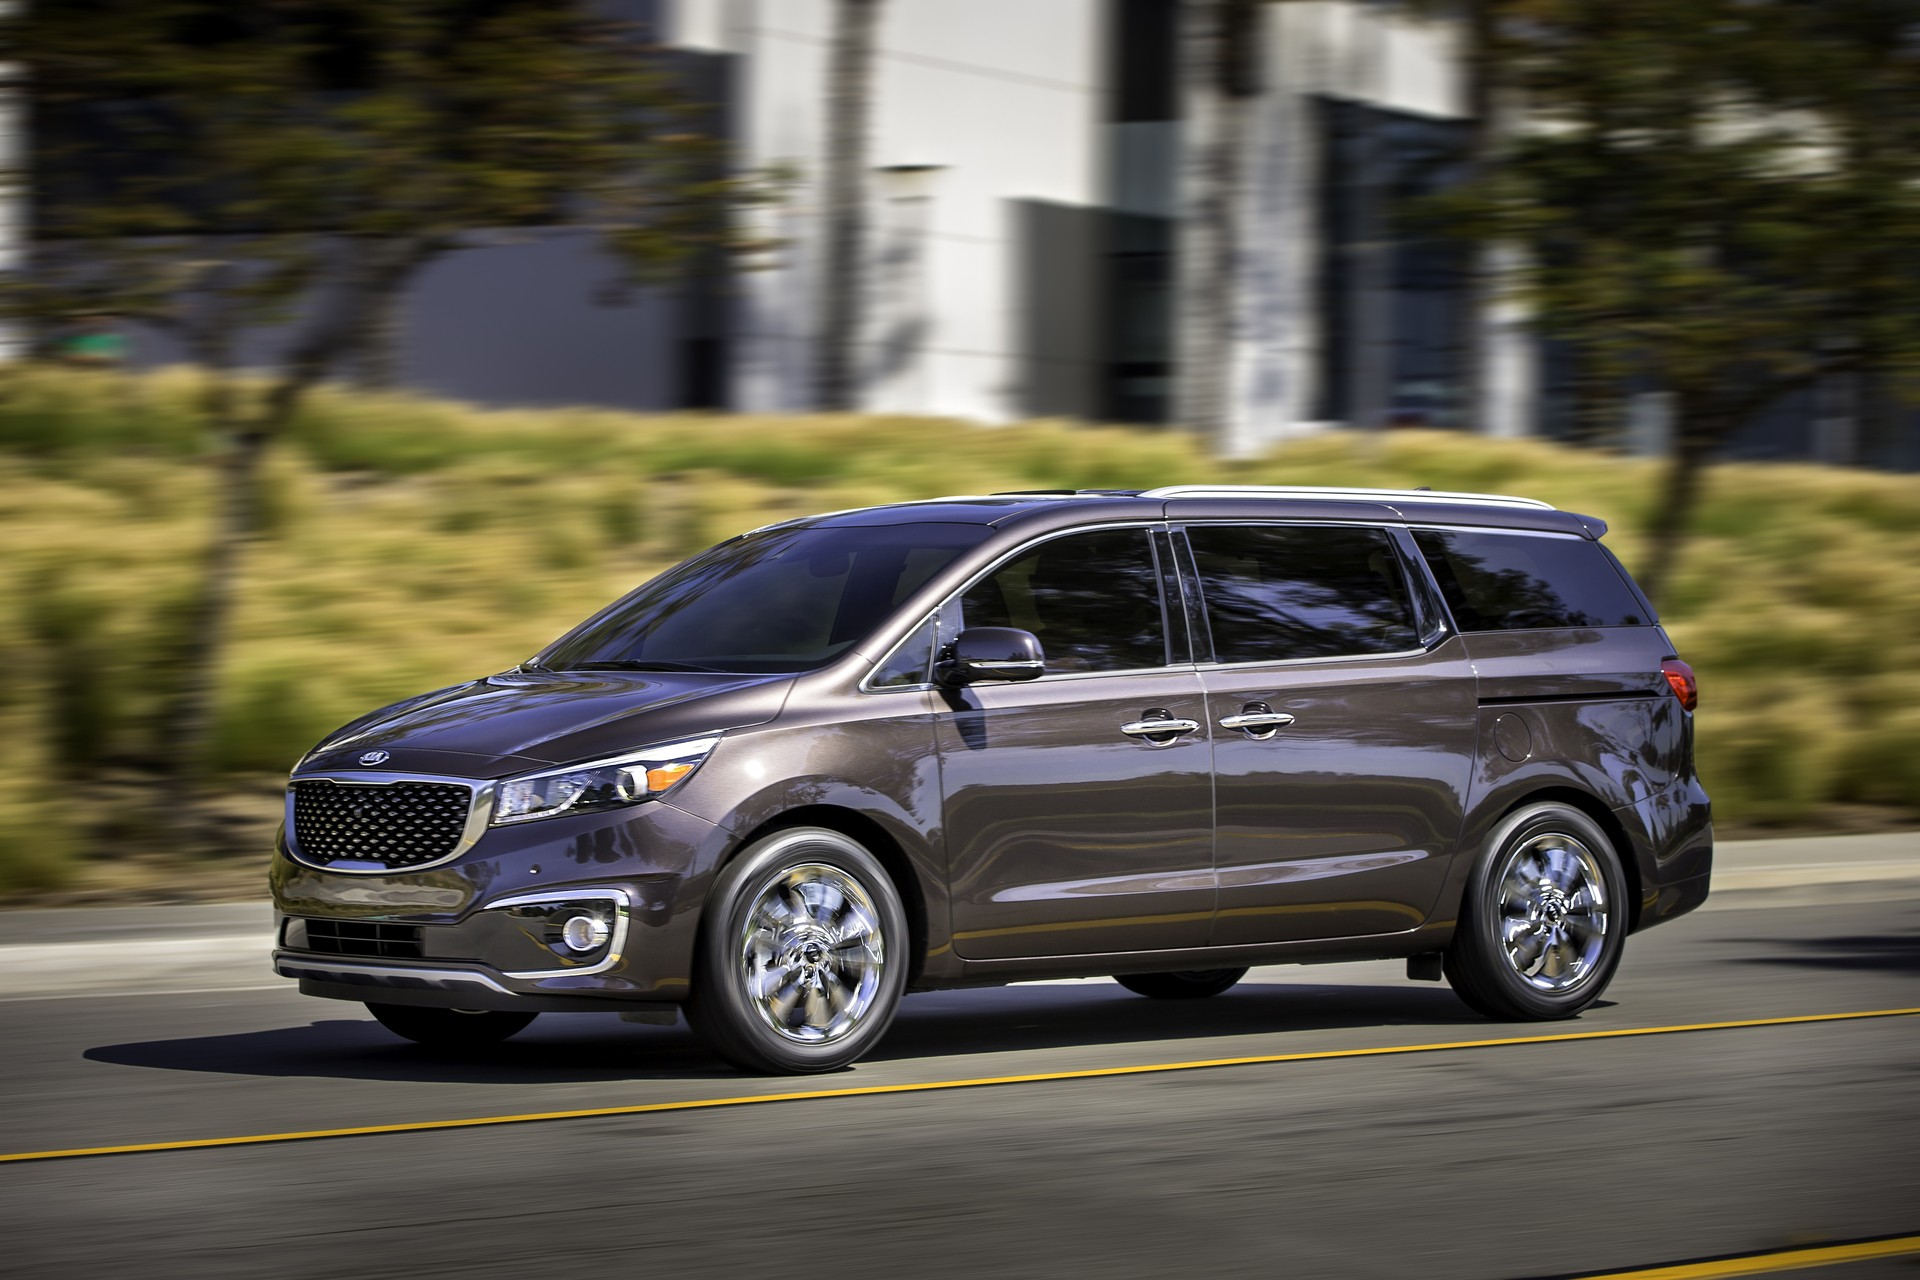 2015 Kia Sedona Crash Test Ratings Now All In And Excellent Fuse Box Diagram